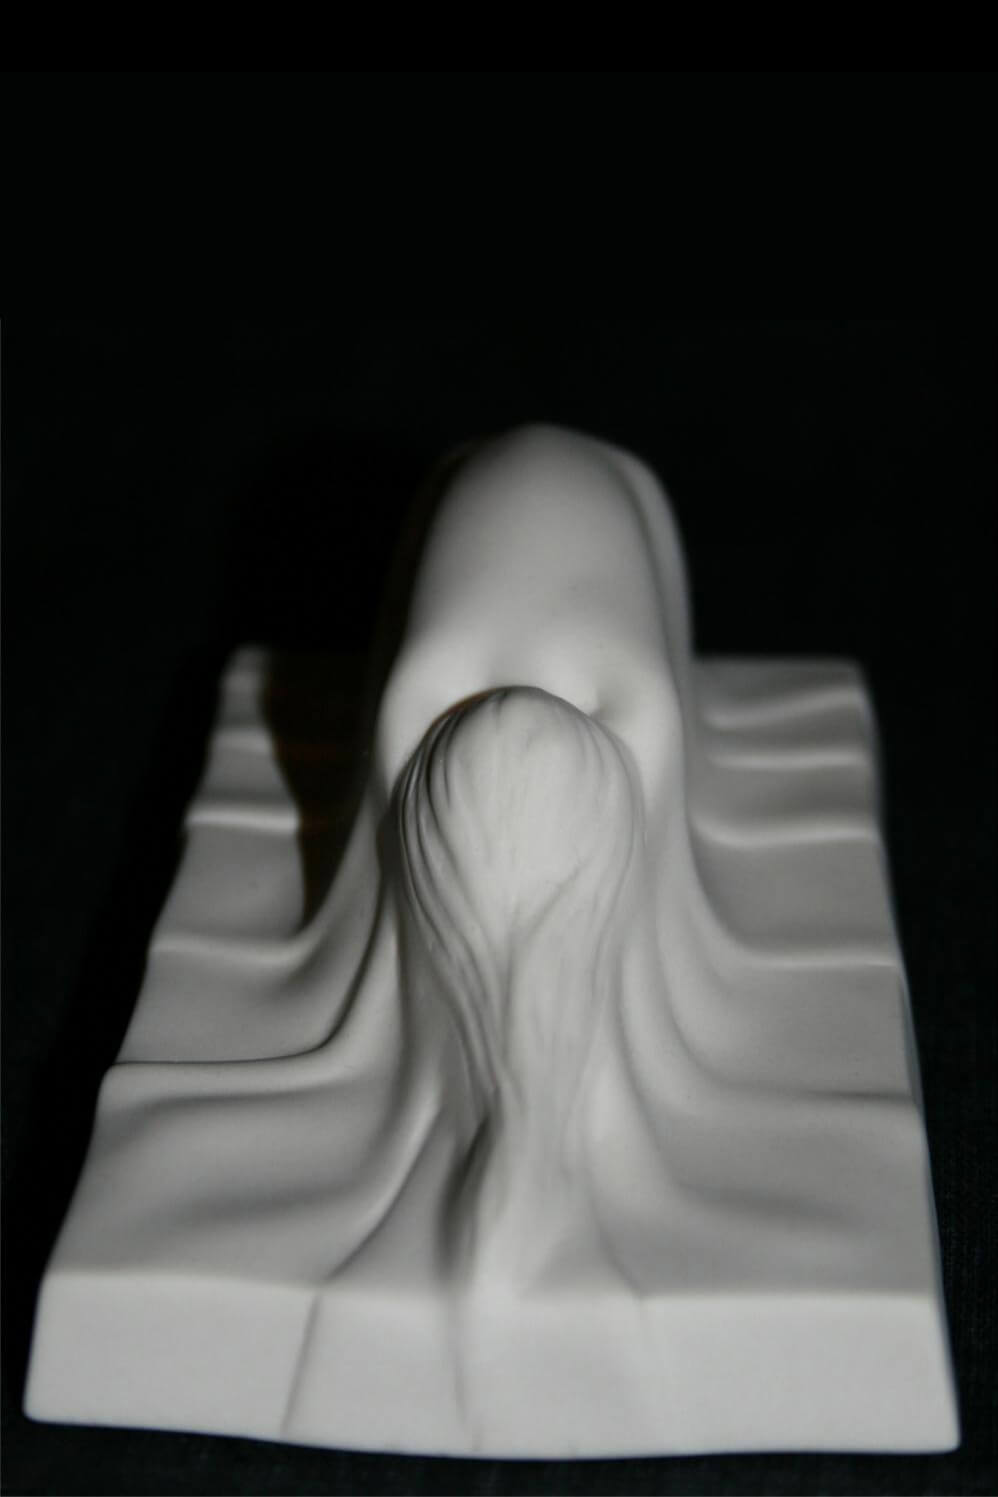 Apparition front-view-2